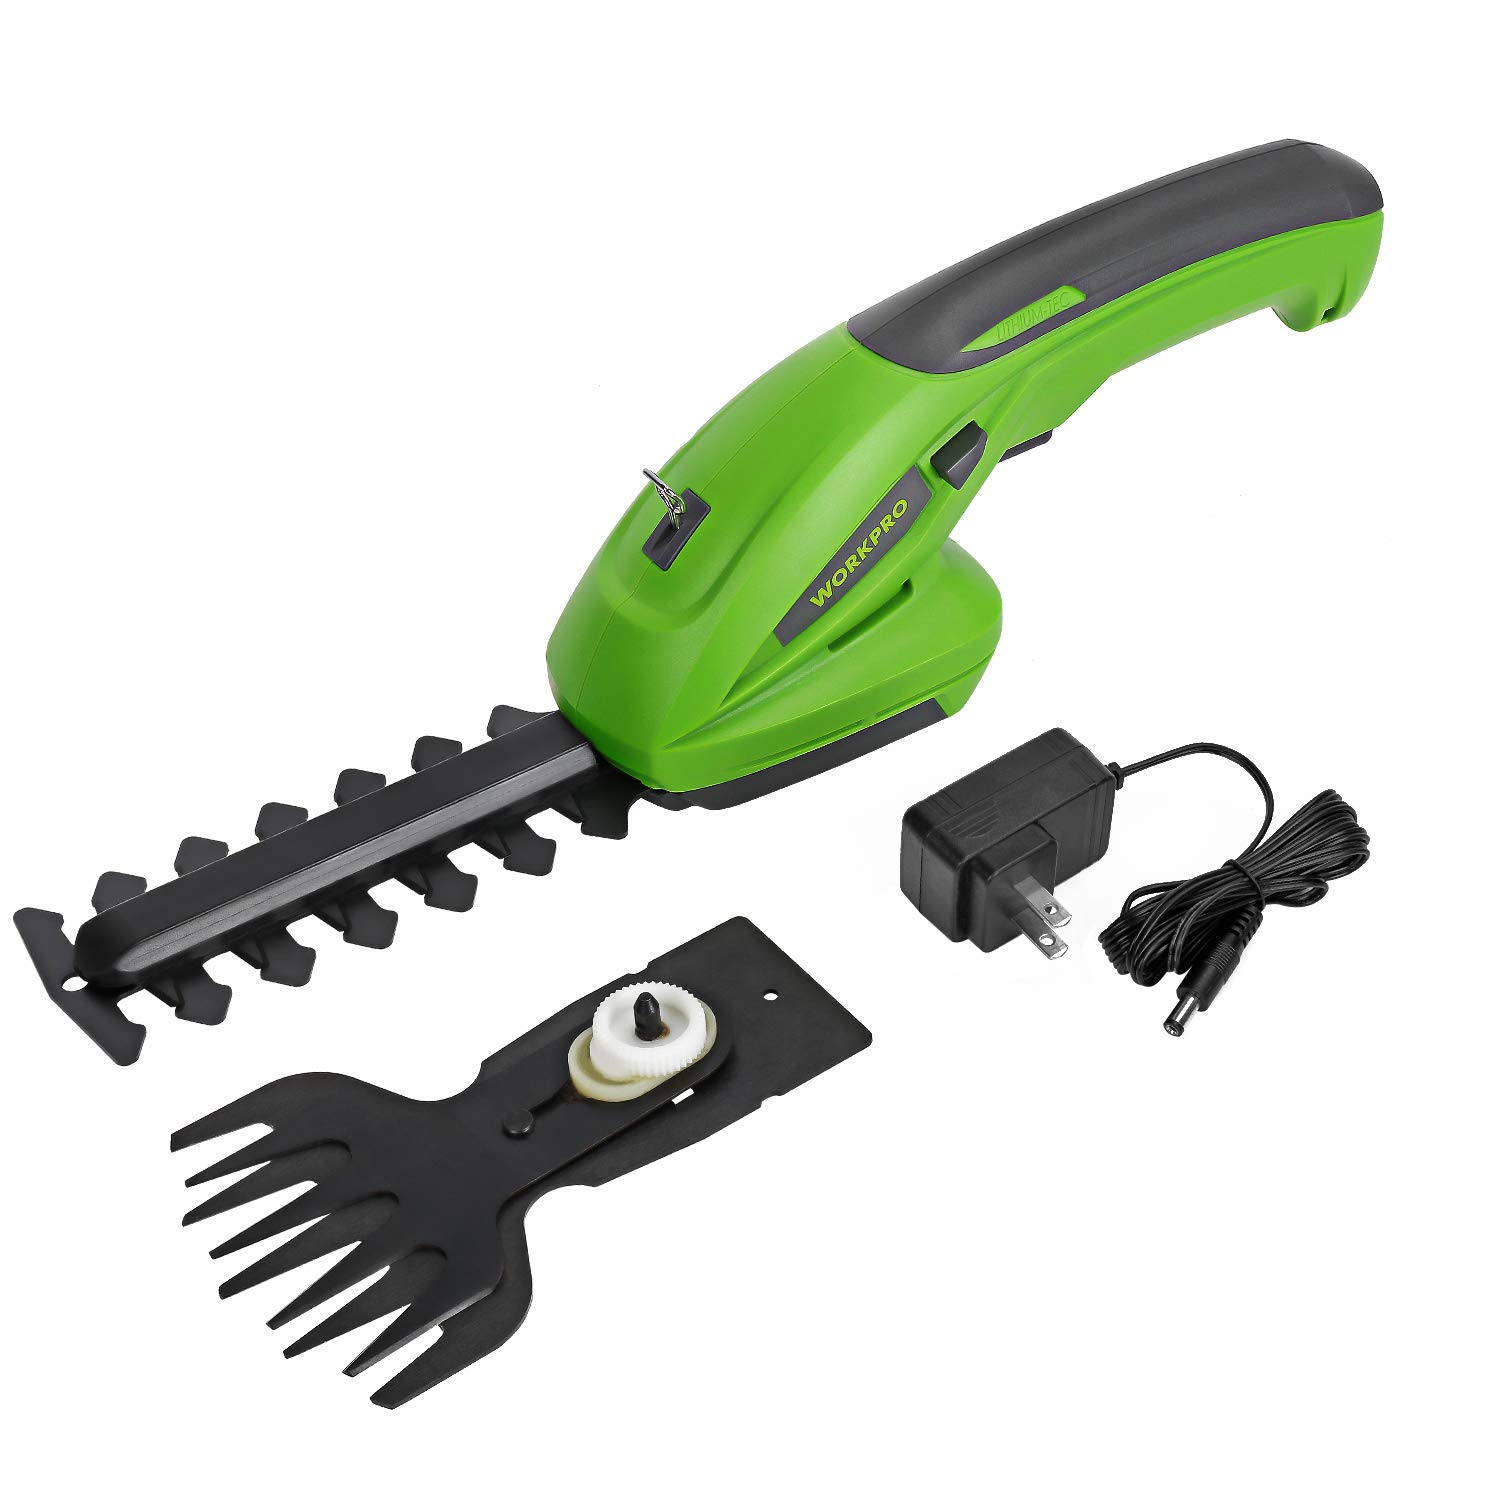 WORKPRO 2-in-1 Cordless Grass Shear and Shrubbery Trimmer - 7.2V Rechargeable Lithium-Ion Battery and Charger Included